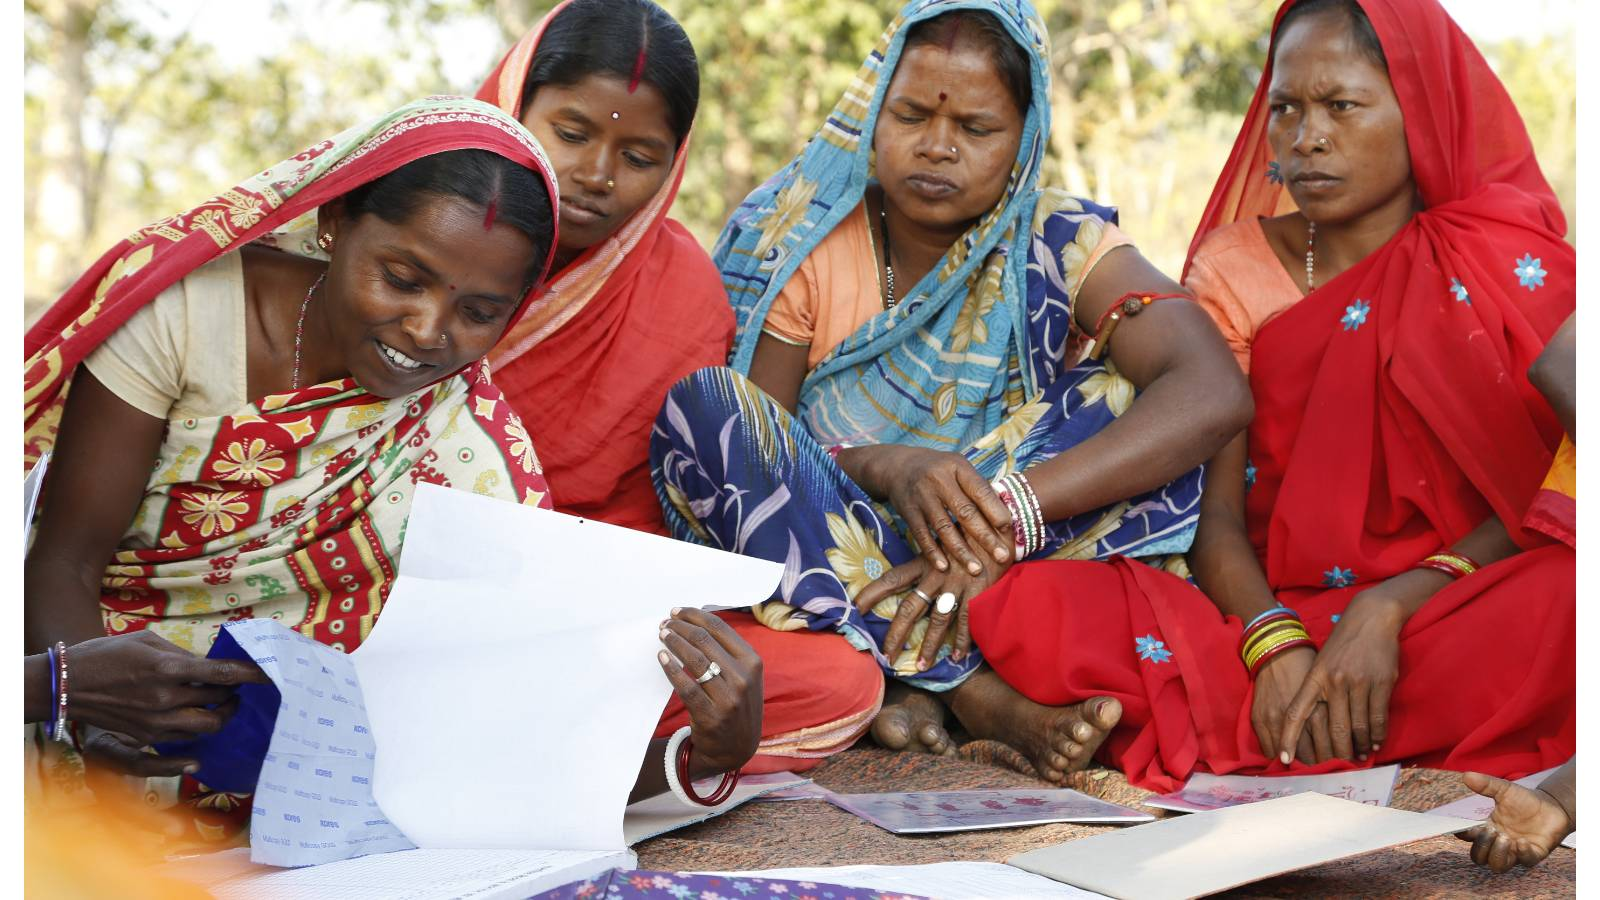 People's Participation for Responsive Institutional Services/Schemes (Panchayat, MGNREGS, Education, Public Distribution System etc.) in a Village